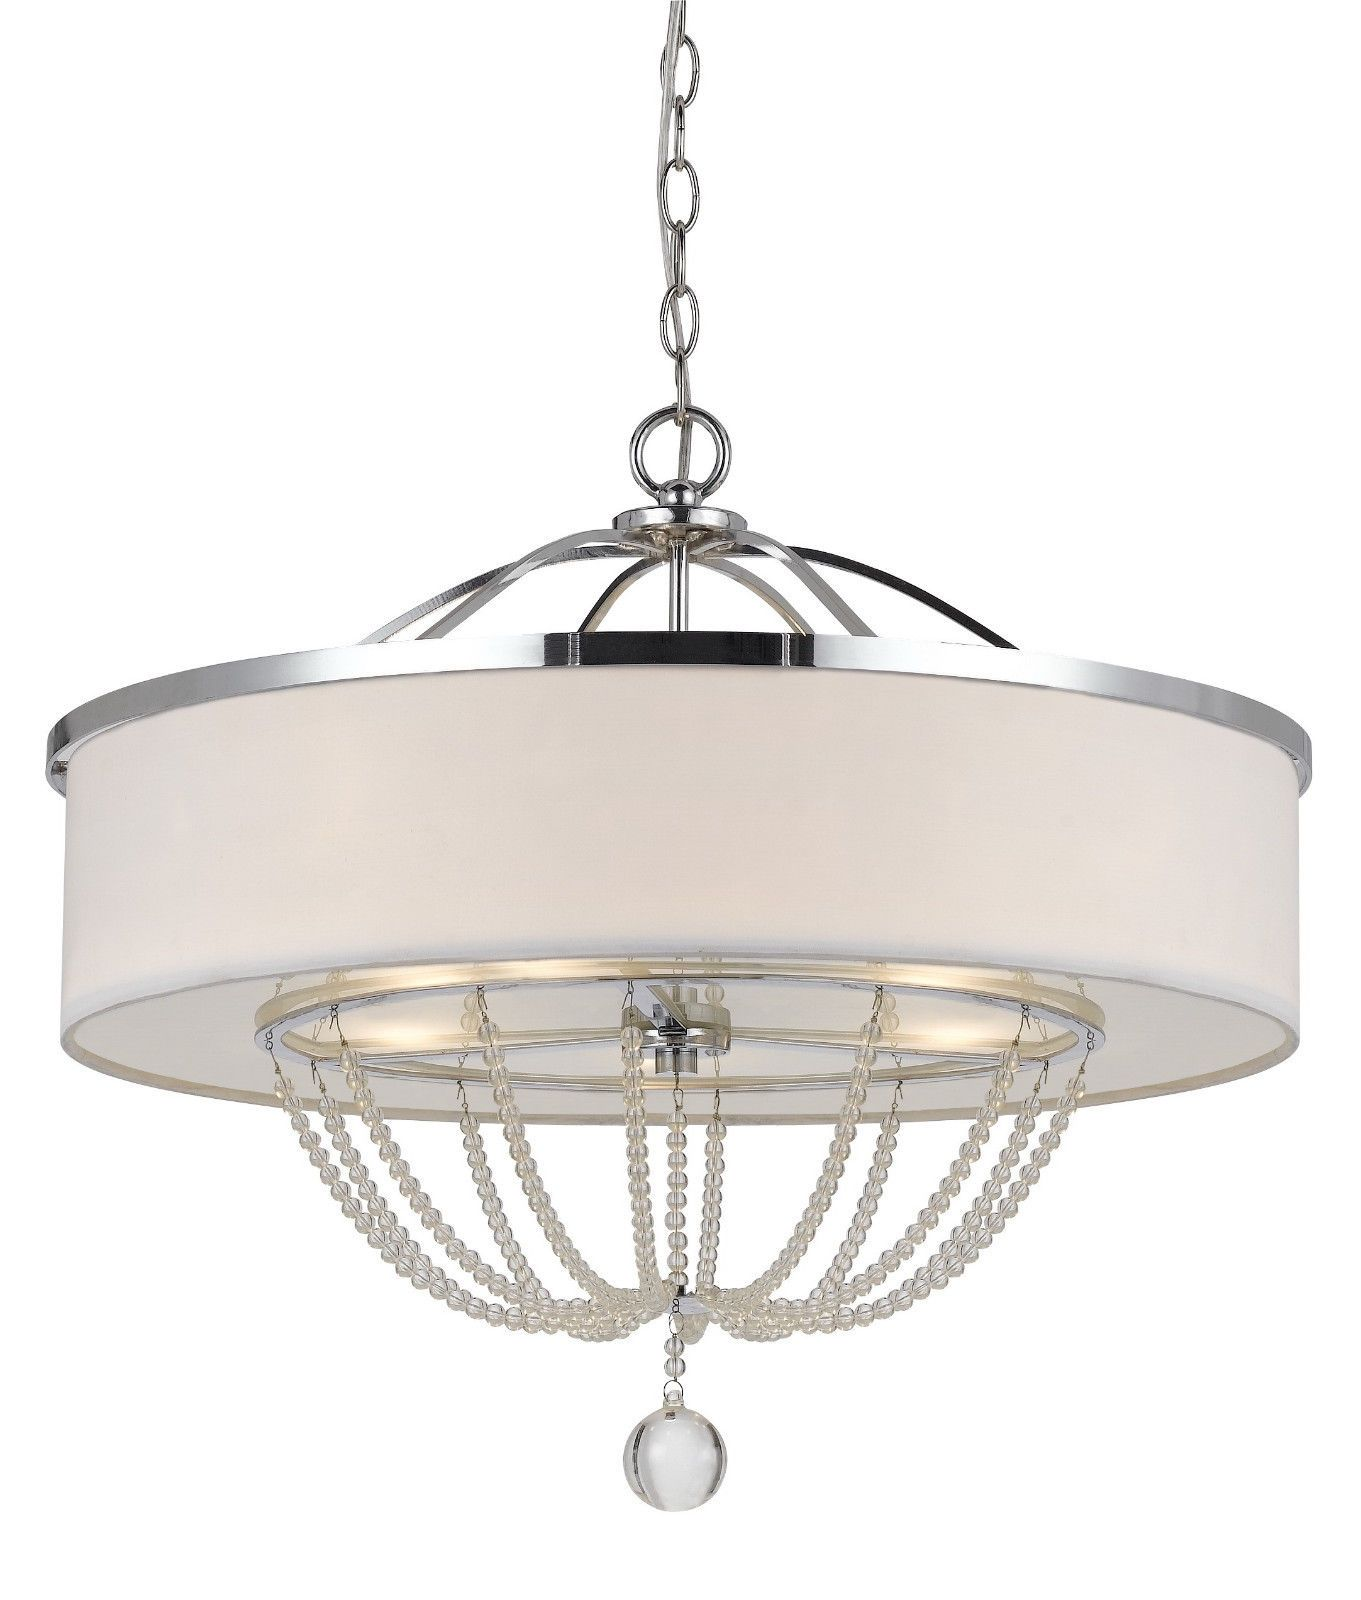 Modern White Fabric With Chrome Metal Crystals Drum Pendant Light Fixture Chandelier Hanging Lamp 24 Wide 21 High